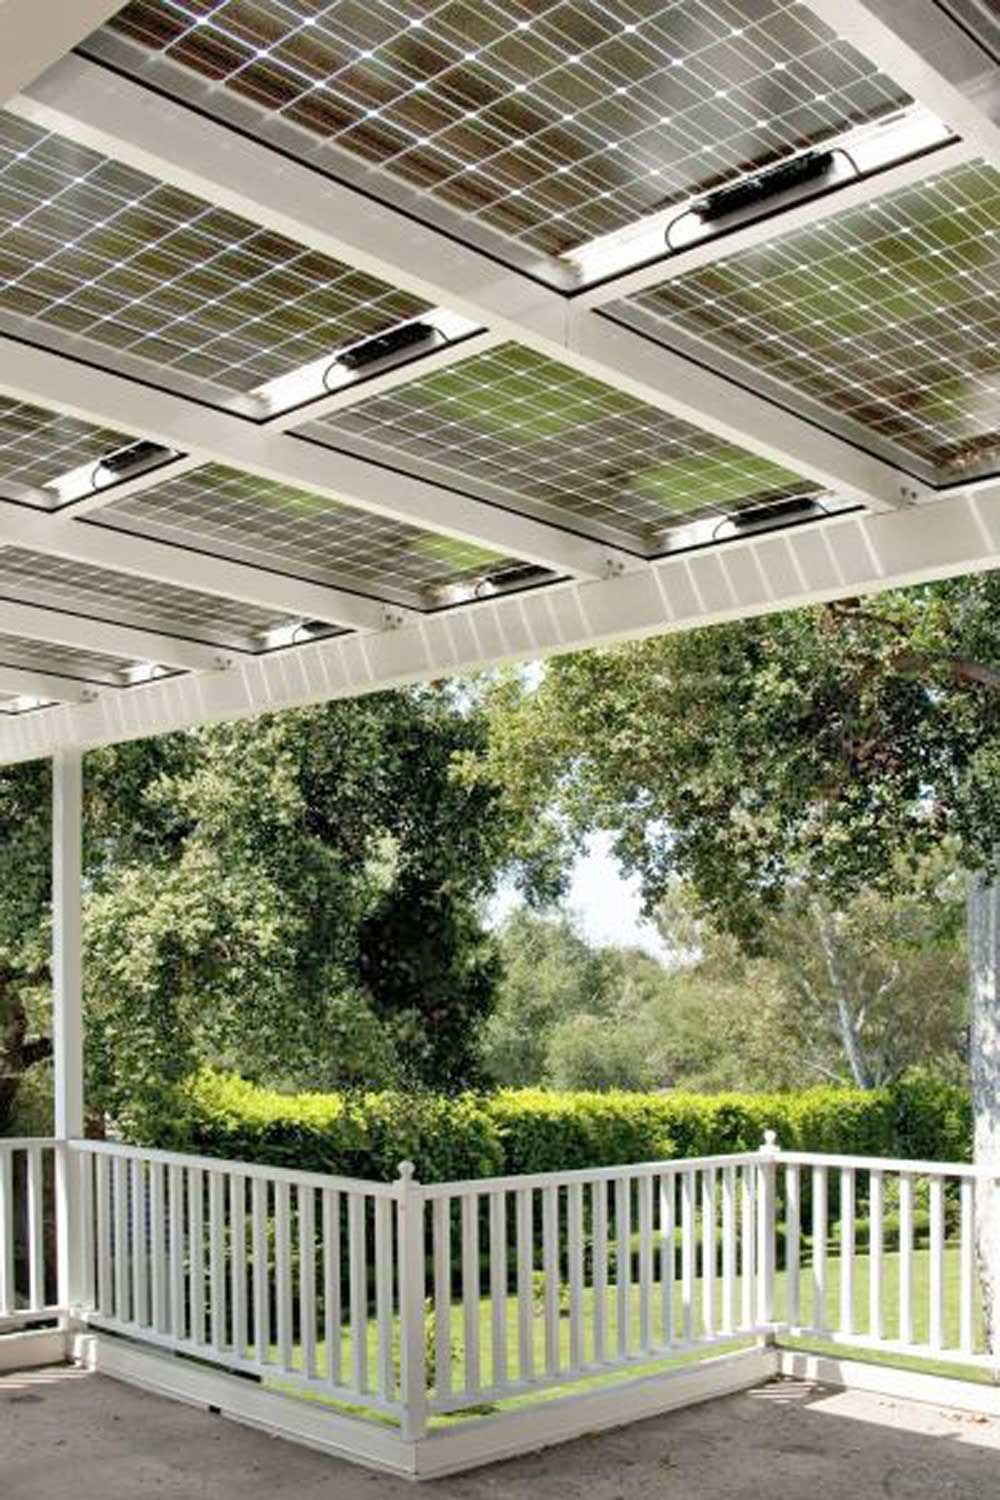 Reled Solar Zonnepaneel Led Verlichting Set - Ideaal Voor Garage Of Schuur Solar Canopies Awning Systems Photo Gallery Solar Wind In 2019